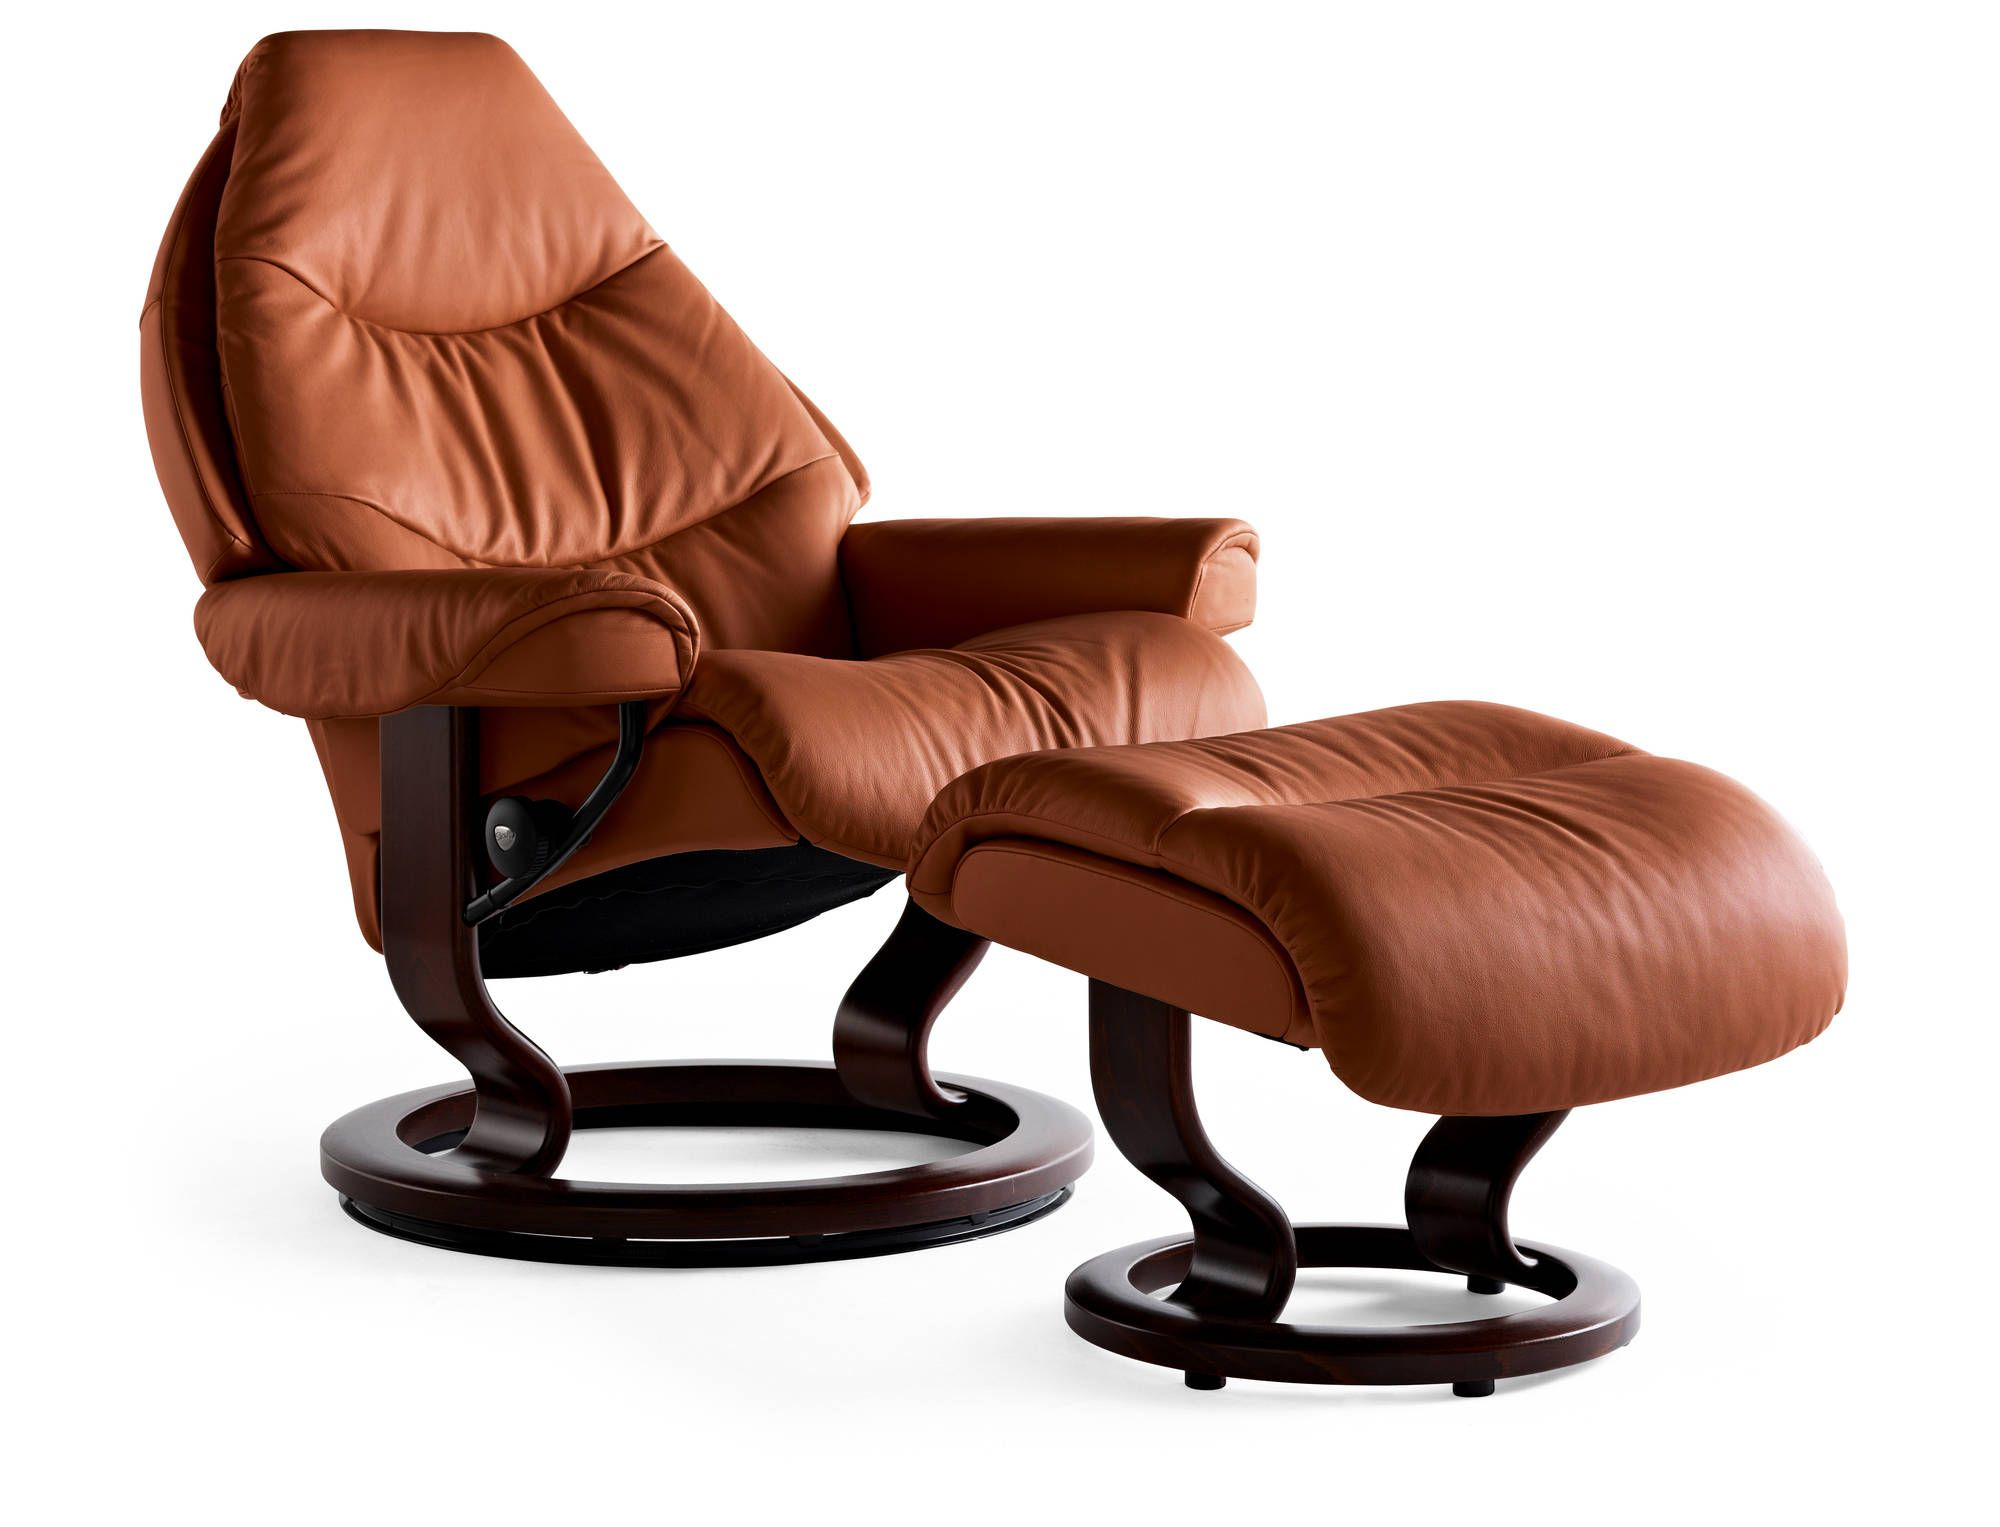 Stressless Ekornes Sessel Tigereye Royalin Leather Voyager Recliner By Ekornes Ekornes